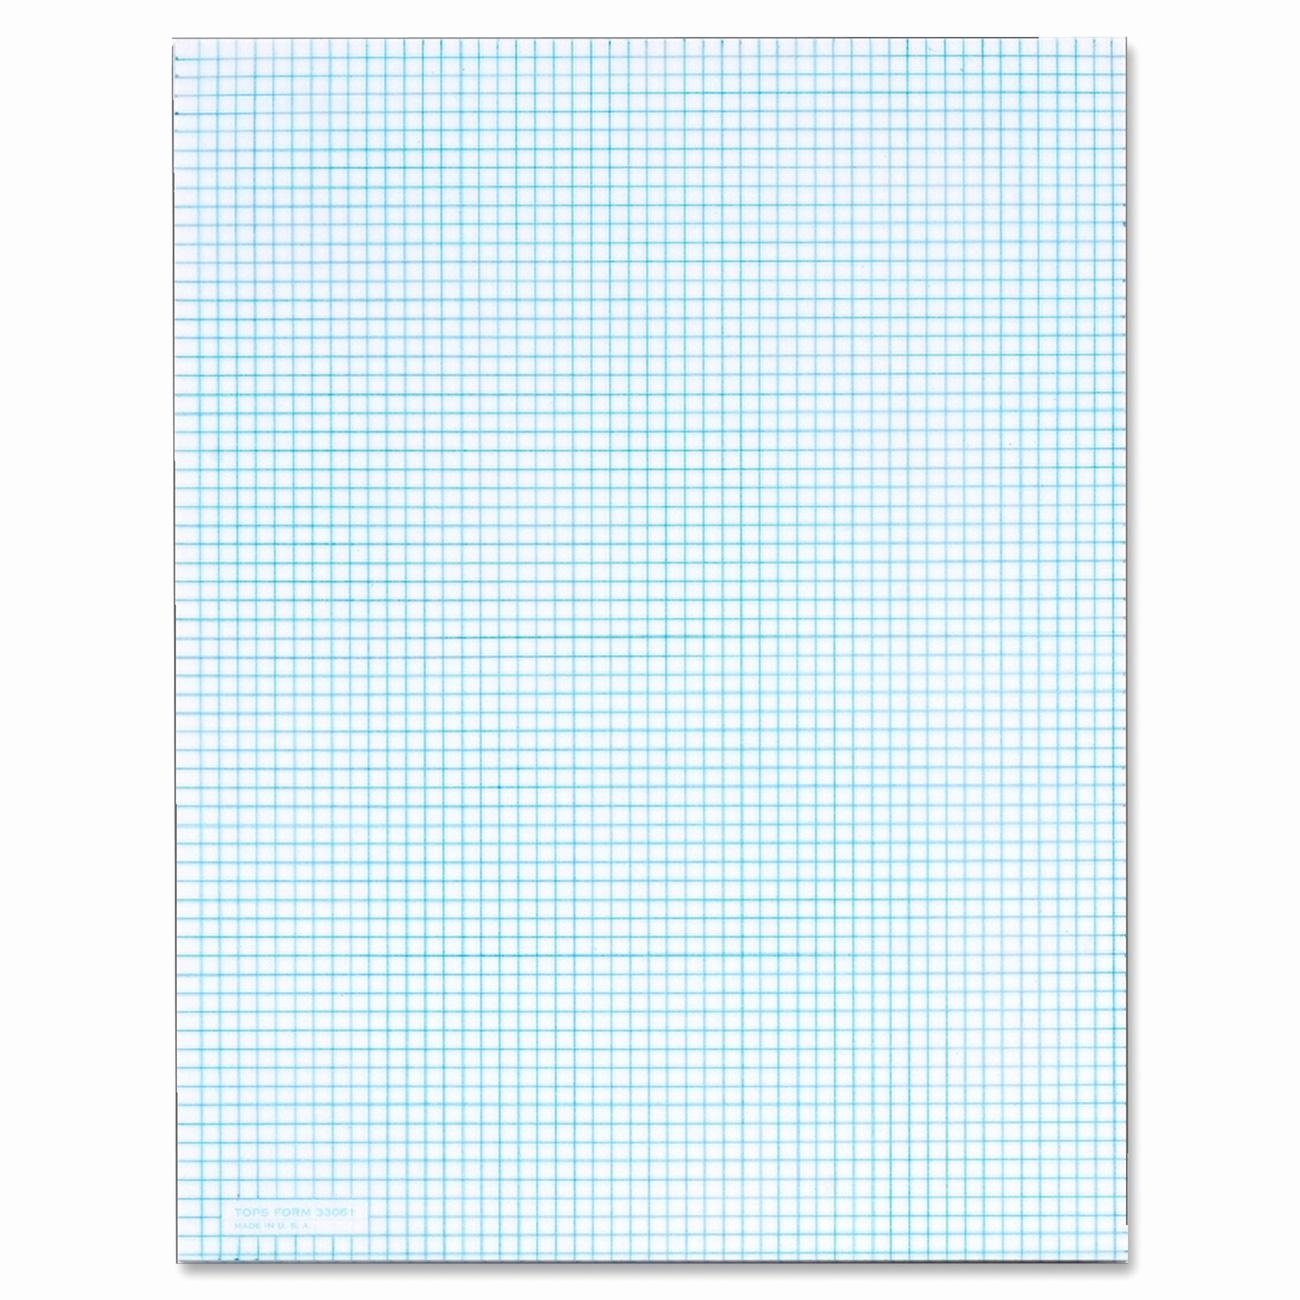 1 Inch Square Grid Paper Awesome E Inch Grid Paper